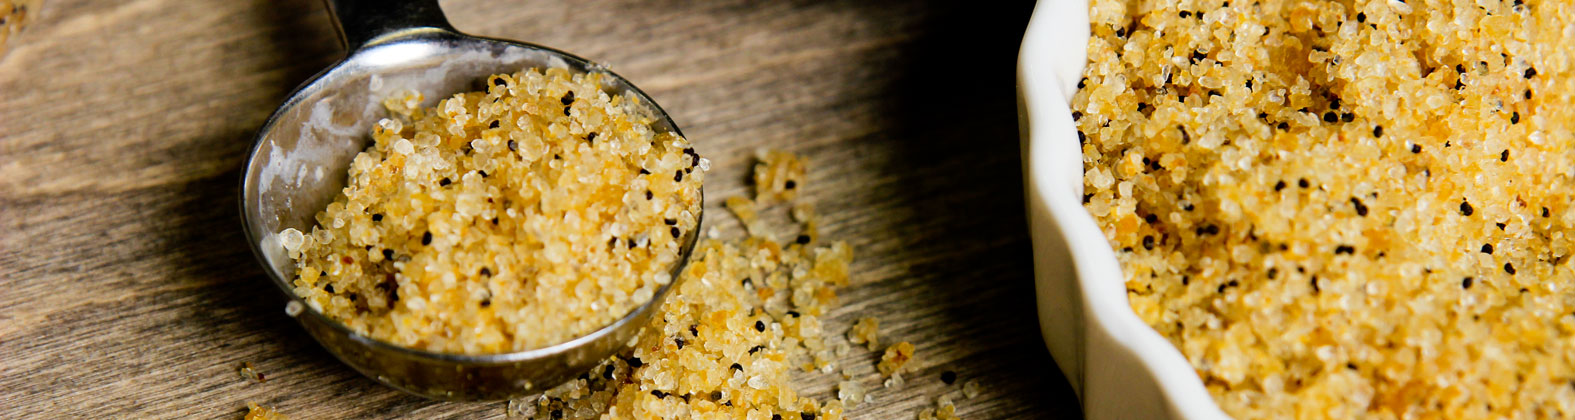 Orange Poppy Seed Salt Scrub